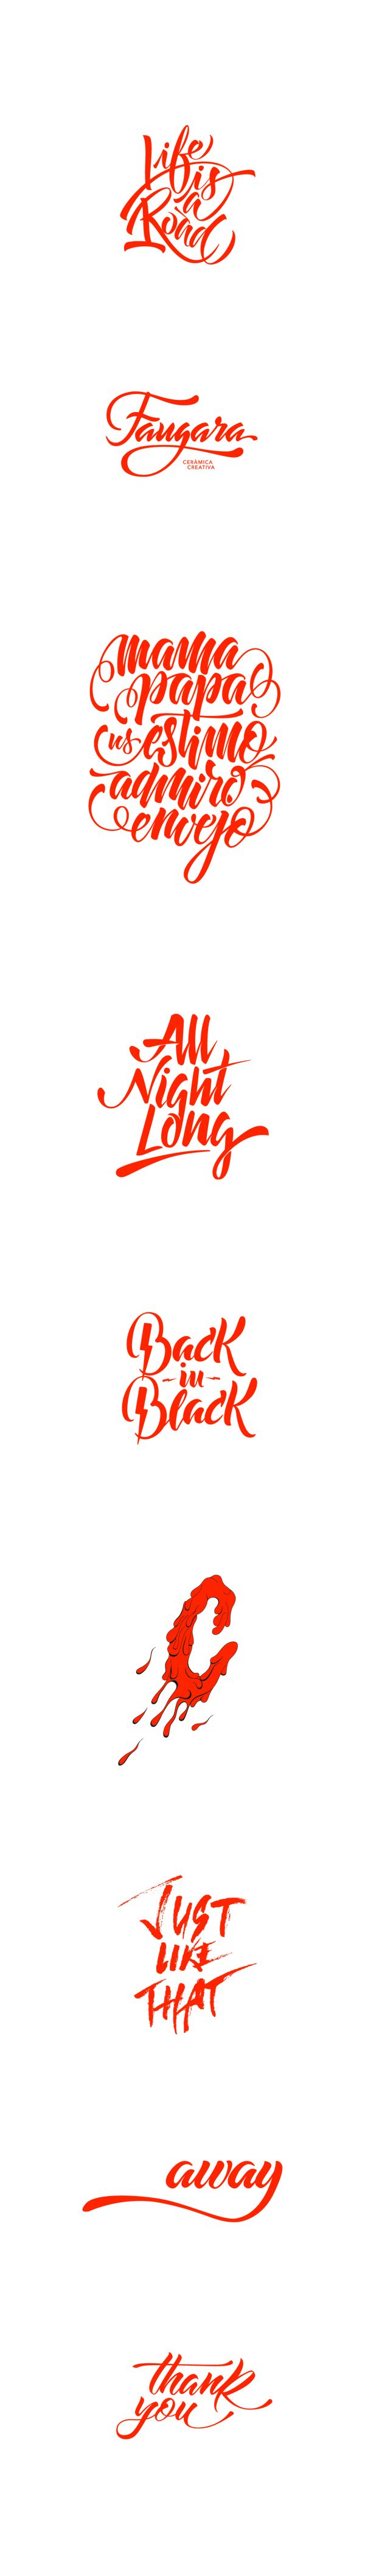 Lettering collection by Jimbo Bernaus, via Behance